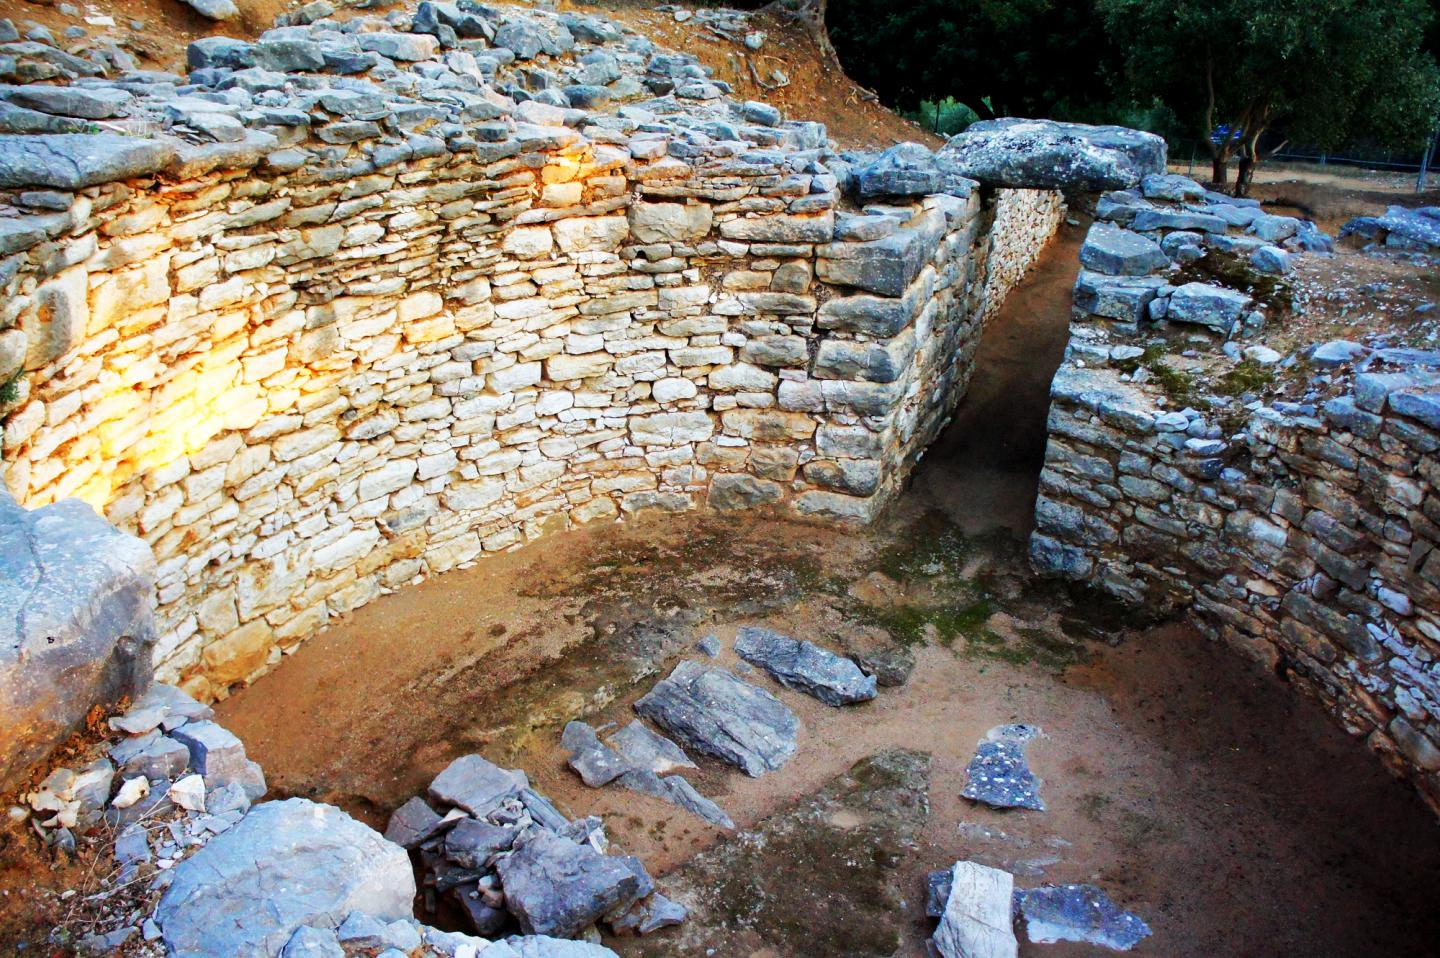 Nichoria Left Behind: The Demise Of A Bronze Age Civilization